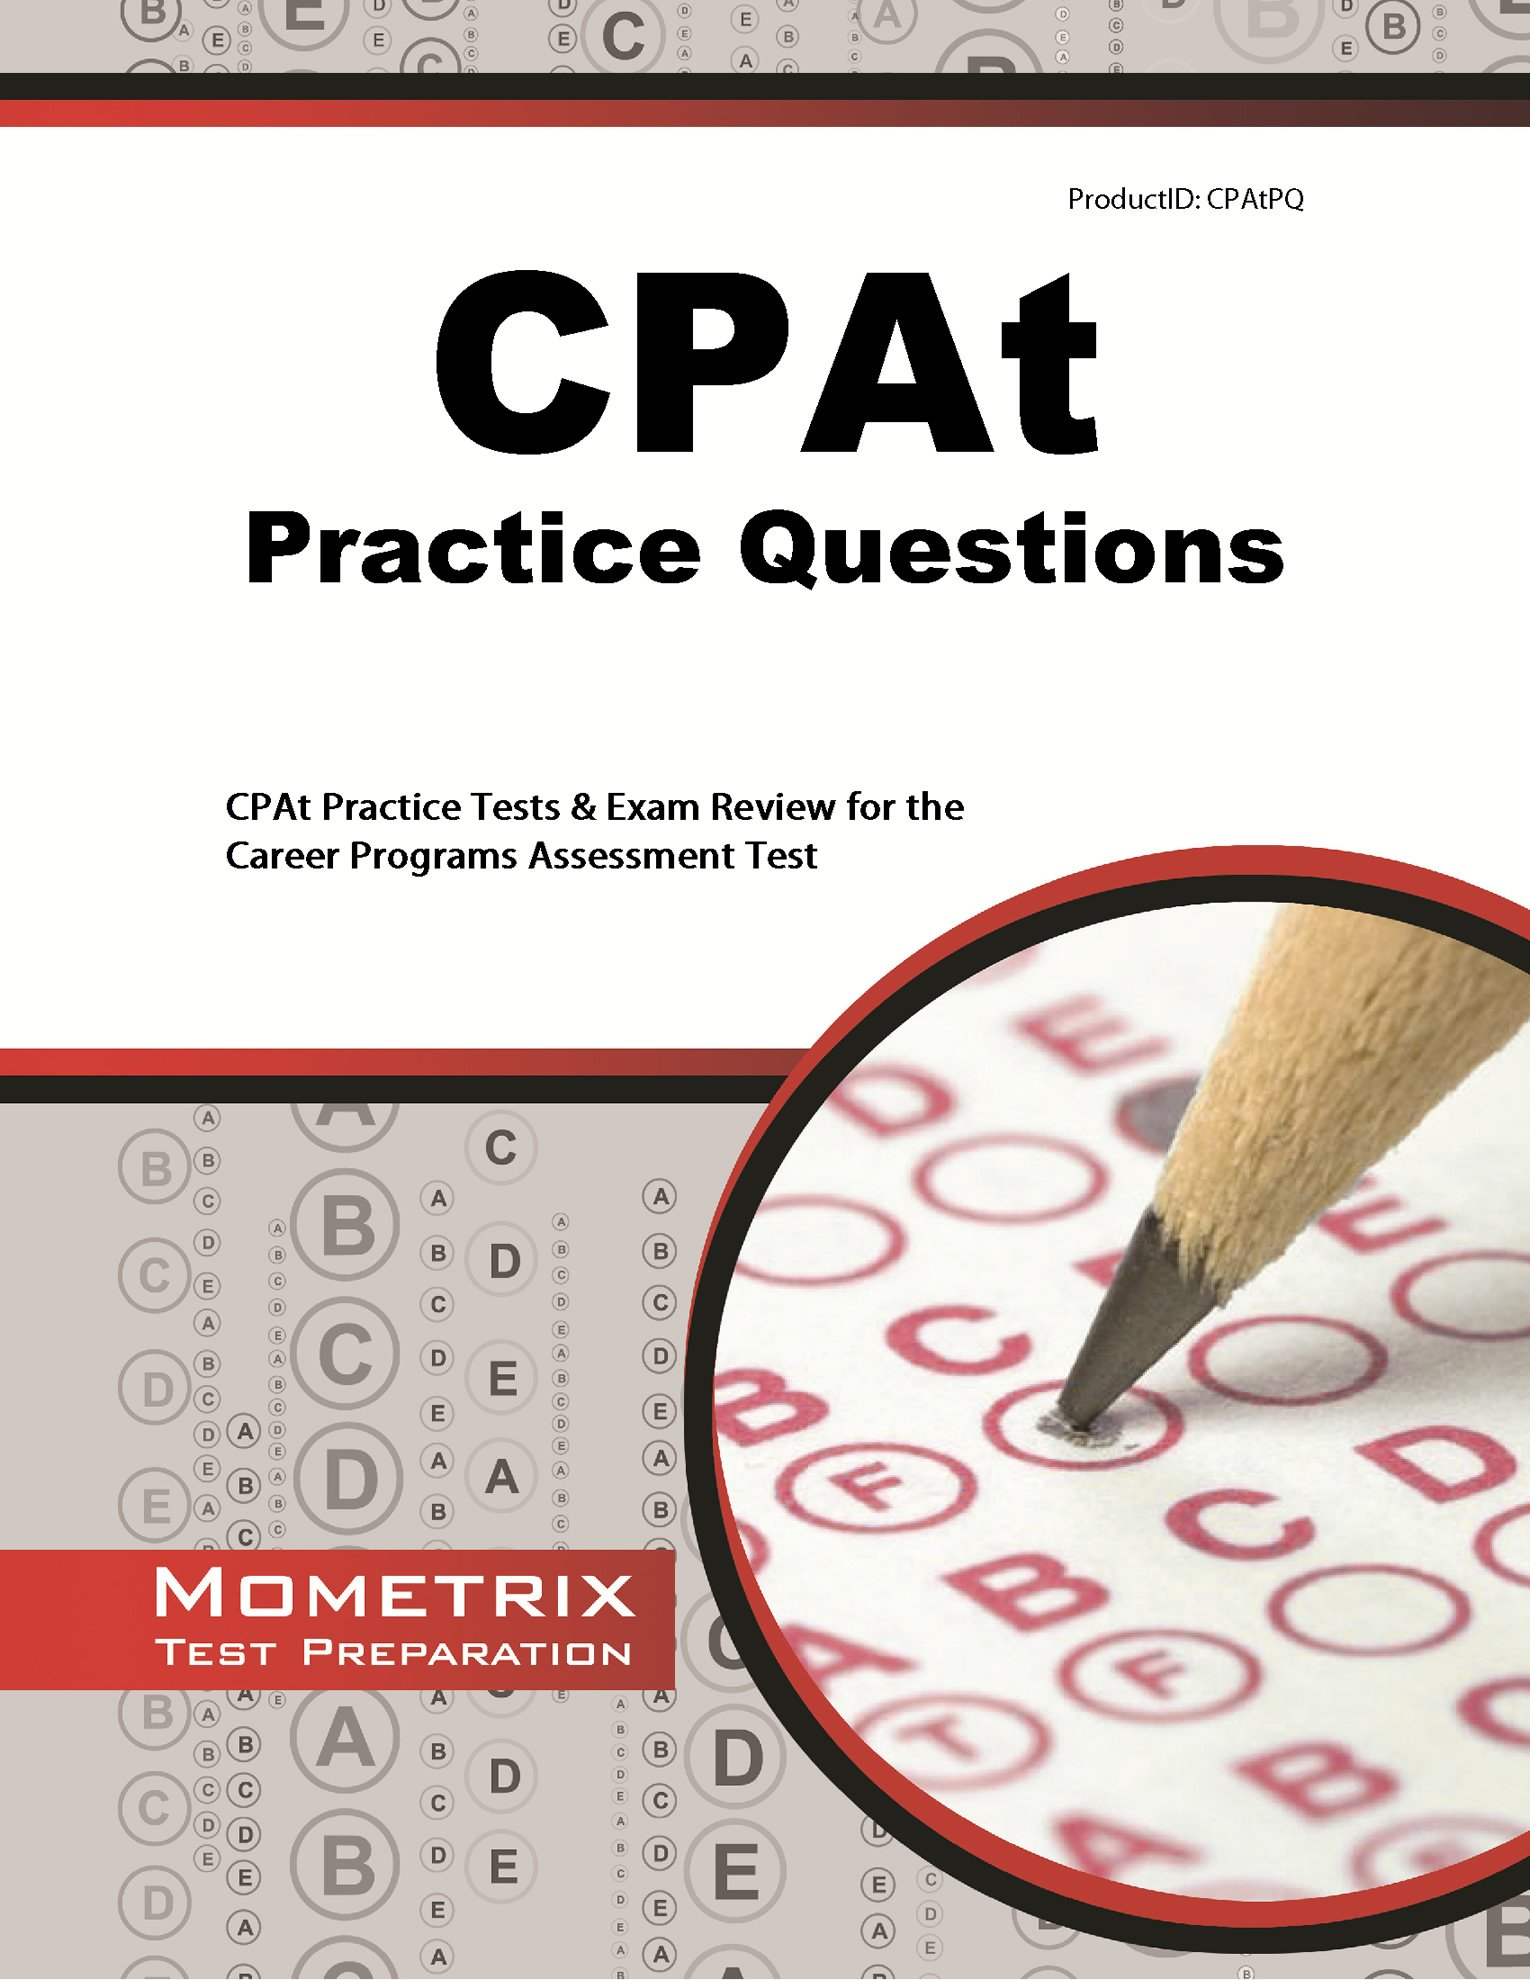 cpat practice questions practice tests exam review for the cpat practice questions practice tests exam review for the career programs assessment test 9781614026167 com books